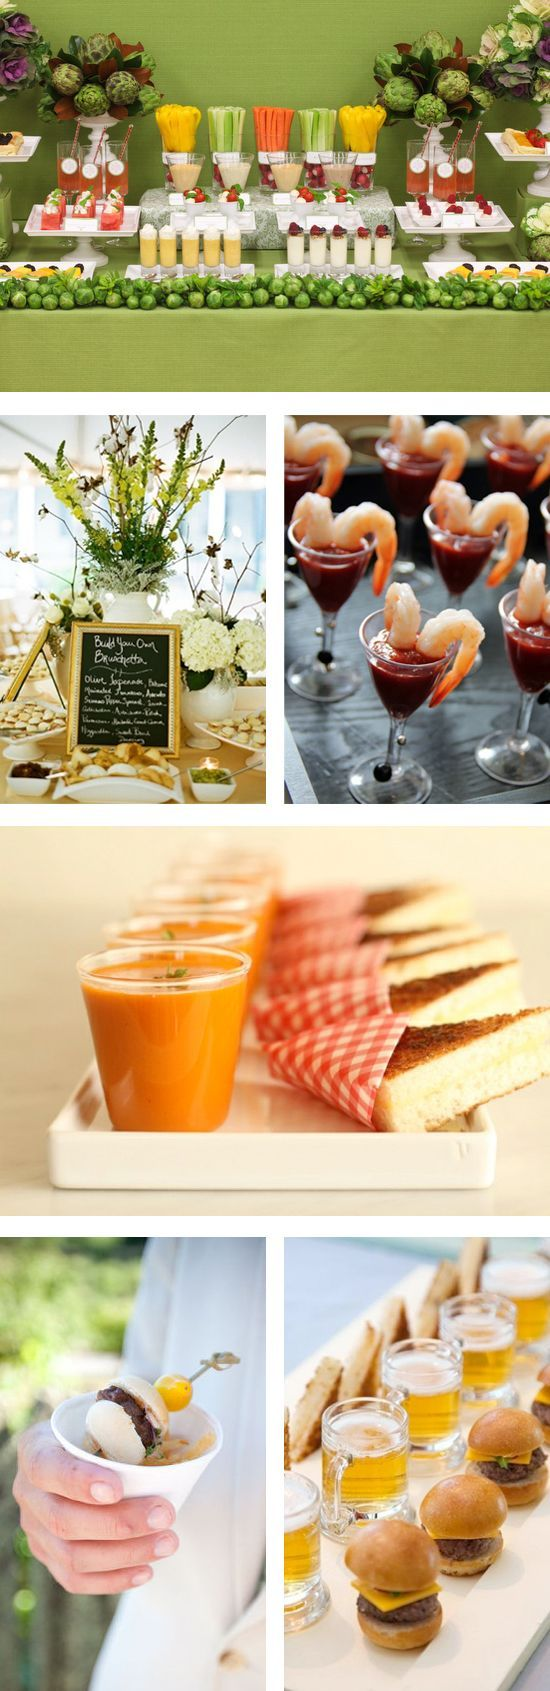 Banquet Food Stations | Creative Food Stations - My Wedding Reception Ideas | Blog